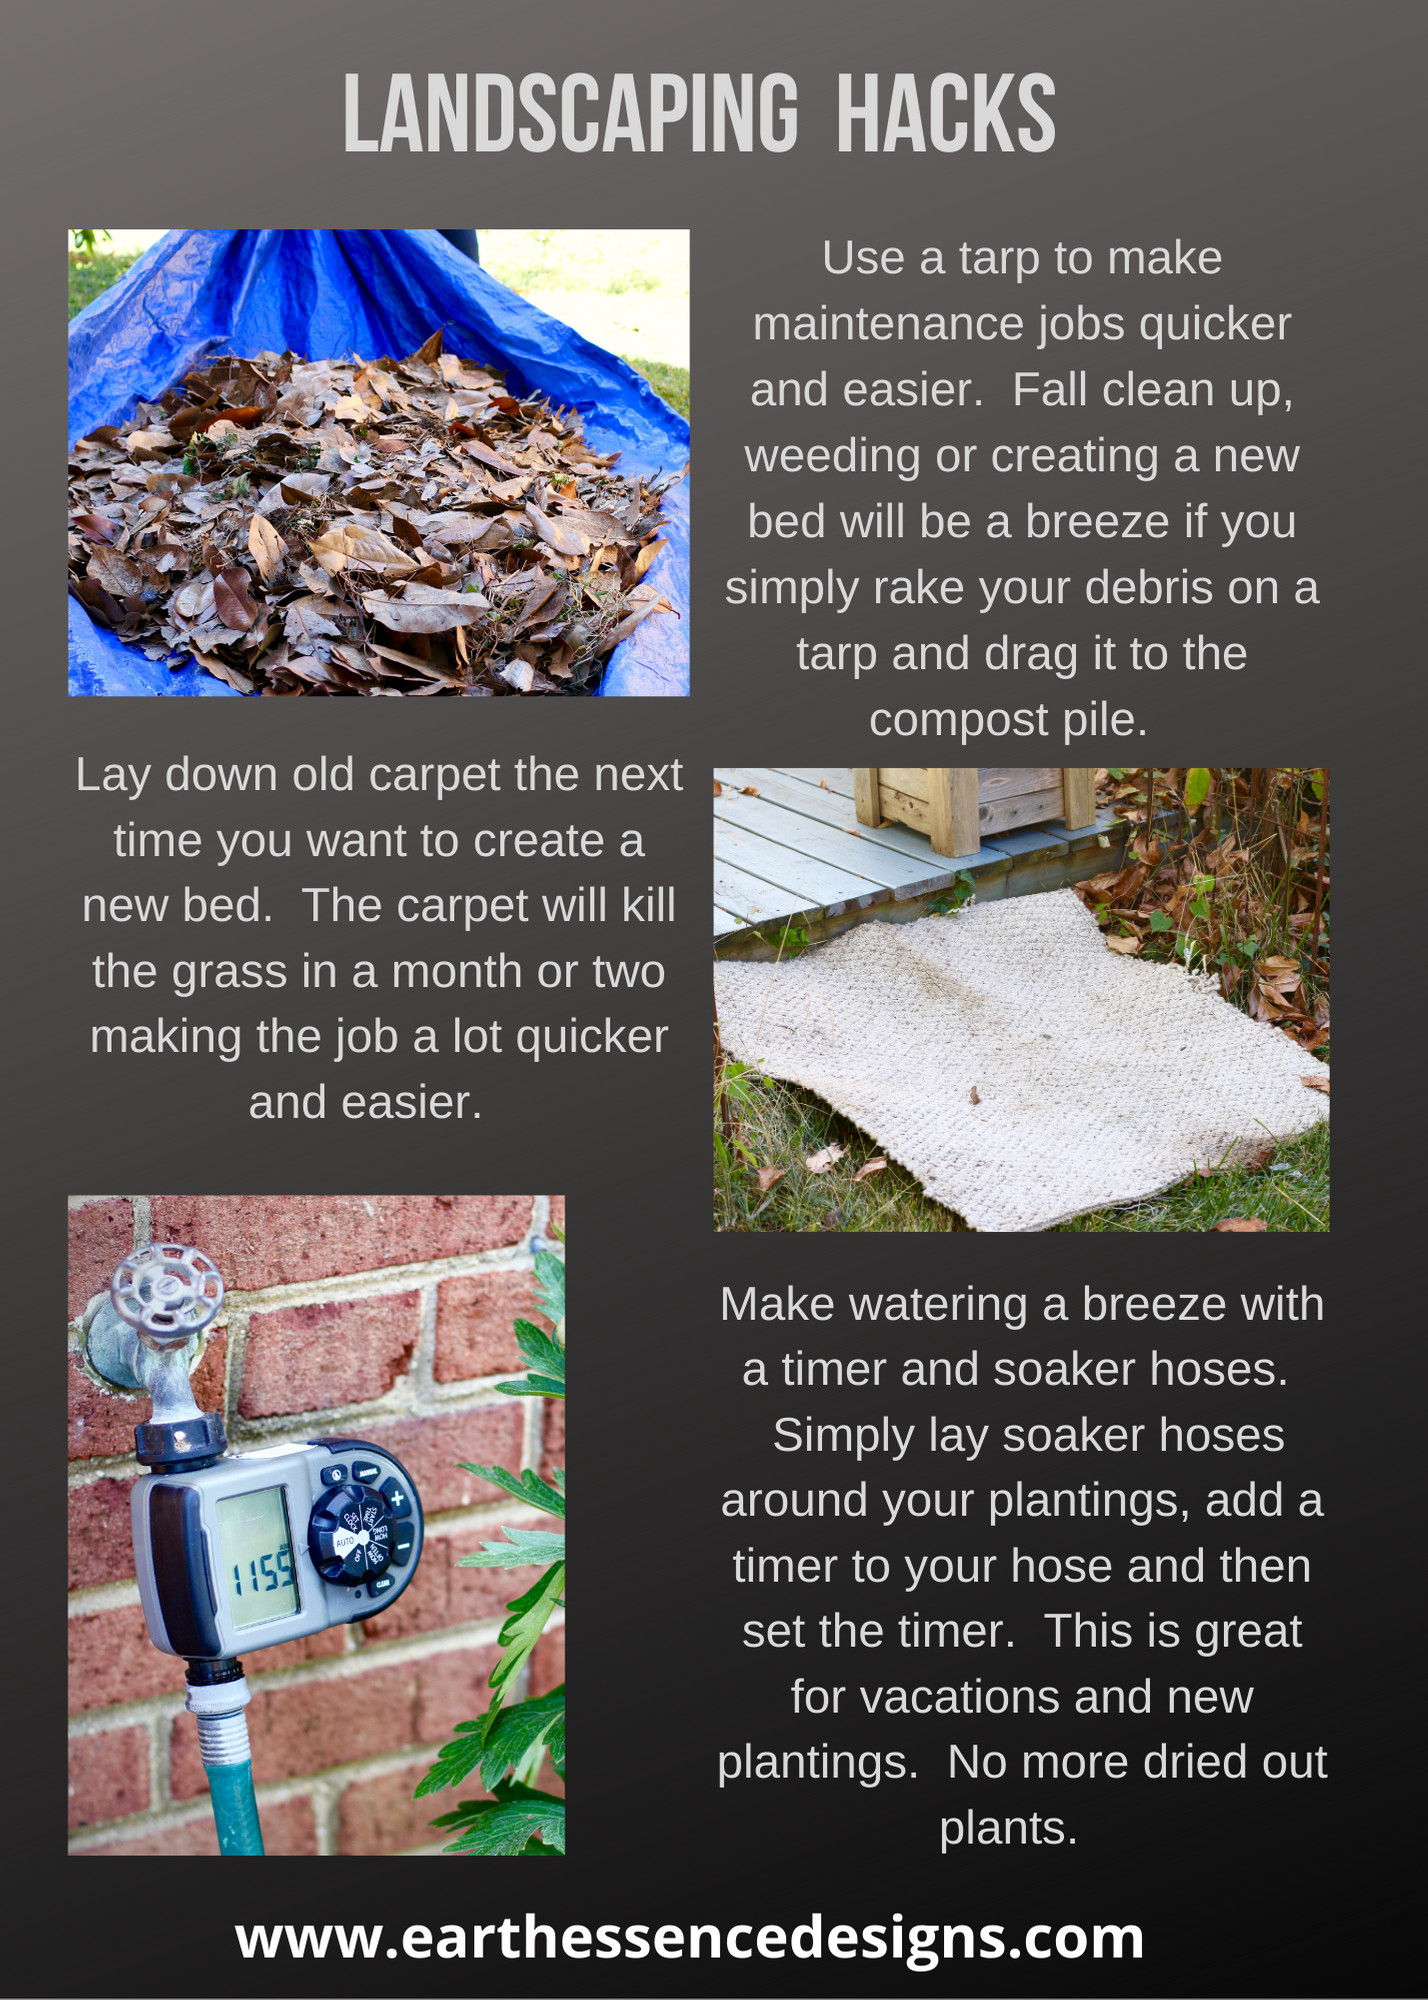 Landscaping tips and resources